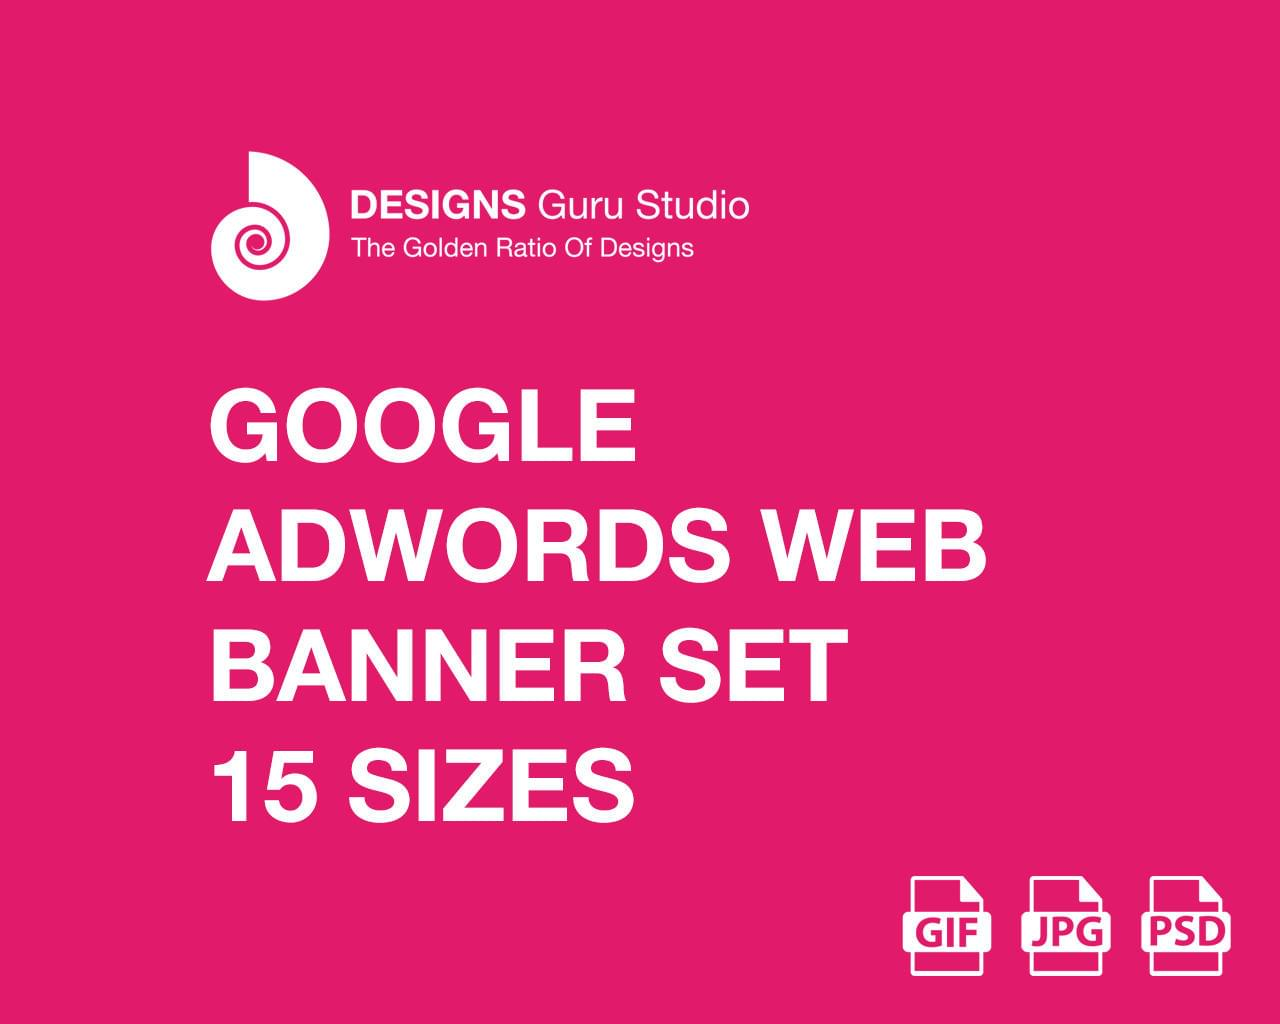 Google AdWords Web Banner Set - 15 Sizes (GIF/JPG) by designsgurustudio - 115319